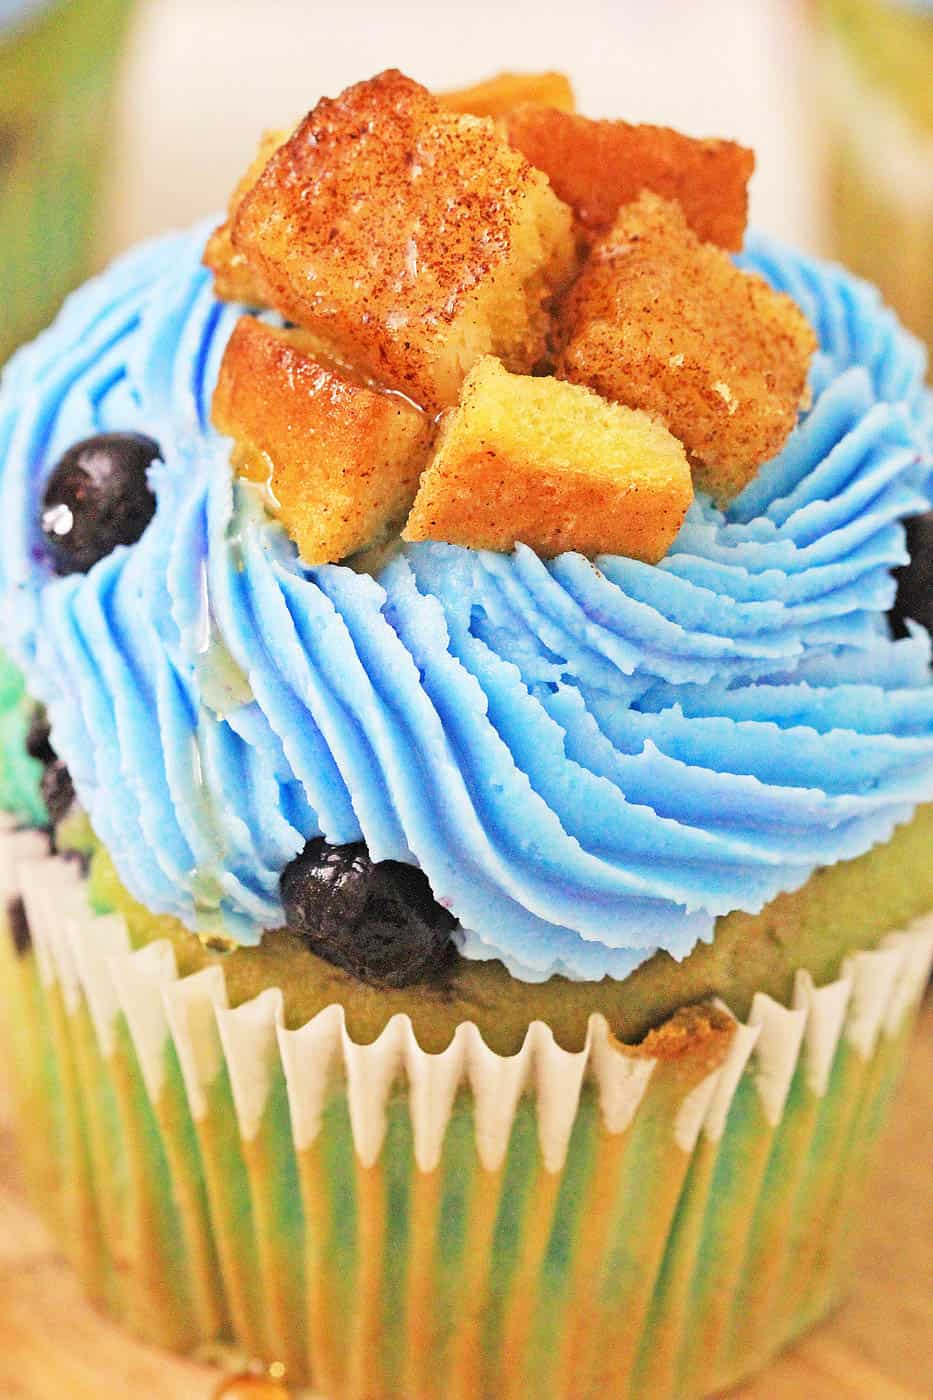 Blueberry Lemonade Cupcakes With Lemon Cream Cheese Frosting